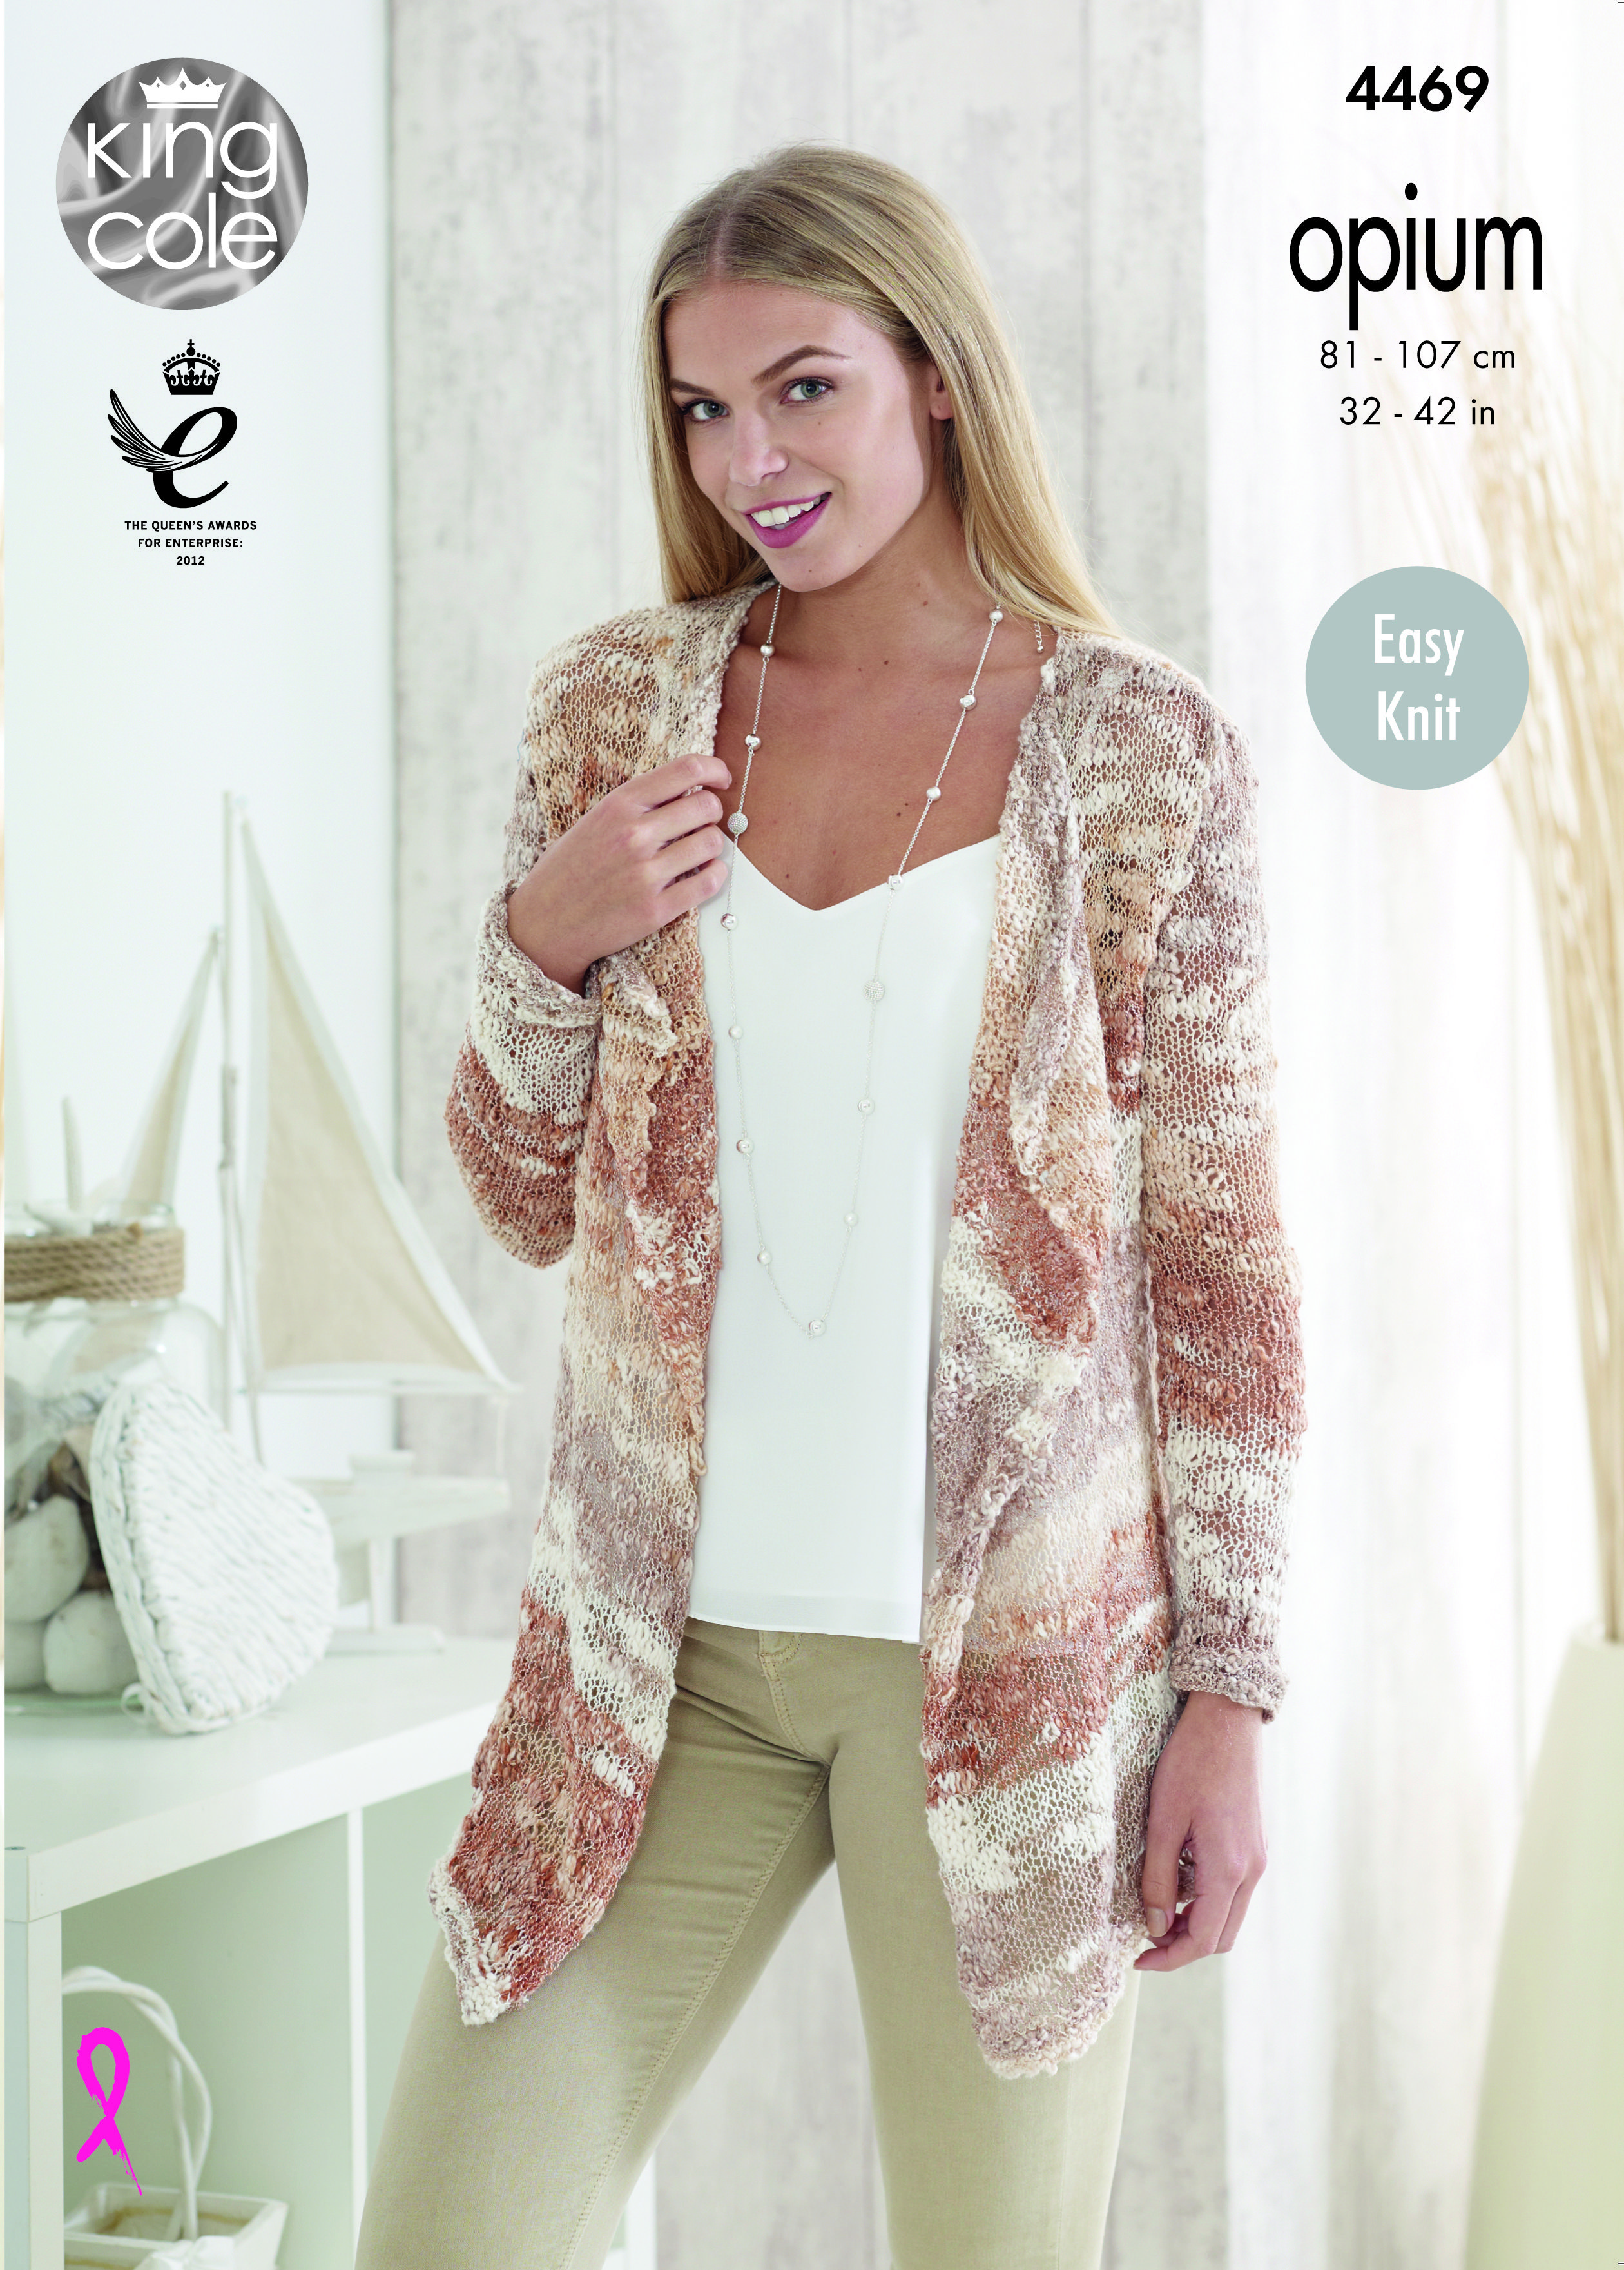 light weight summer waterfall cardigan - King Cole | Summer Cover ...